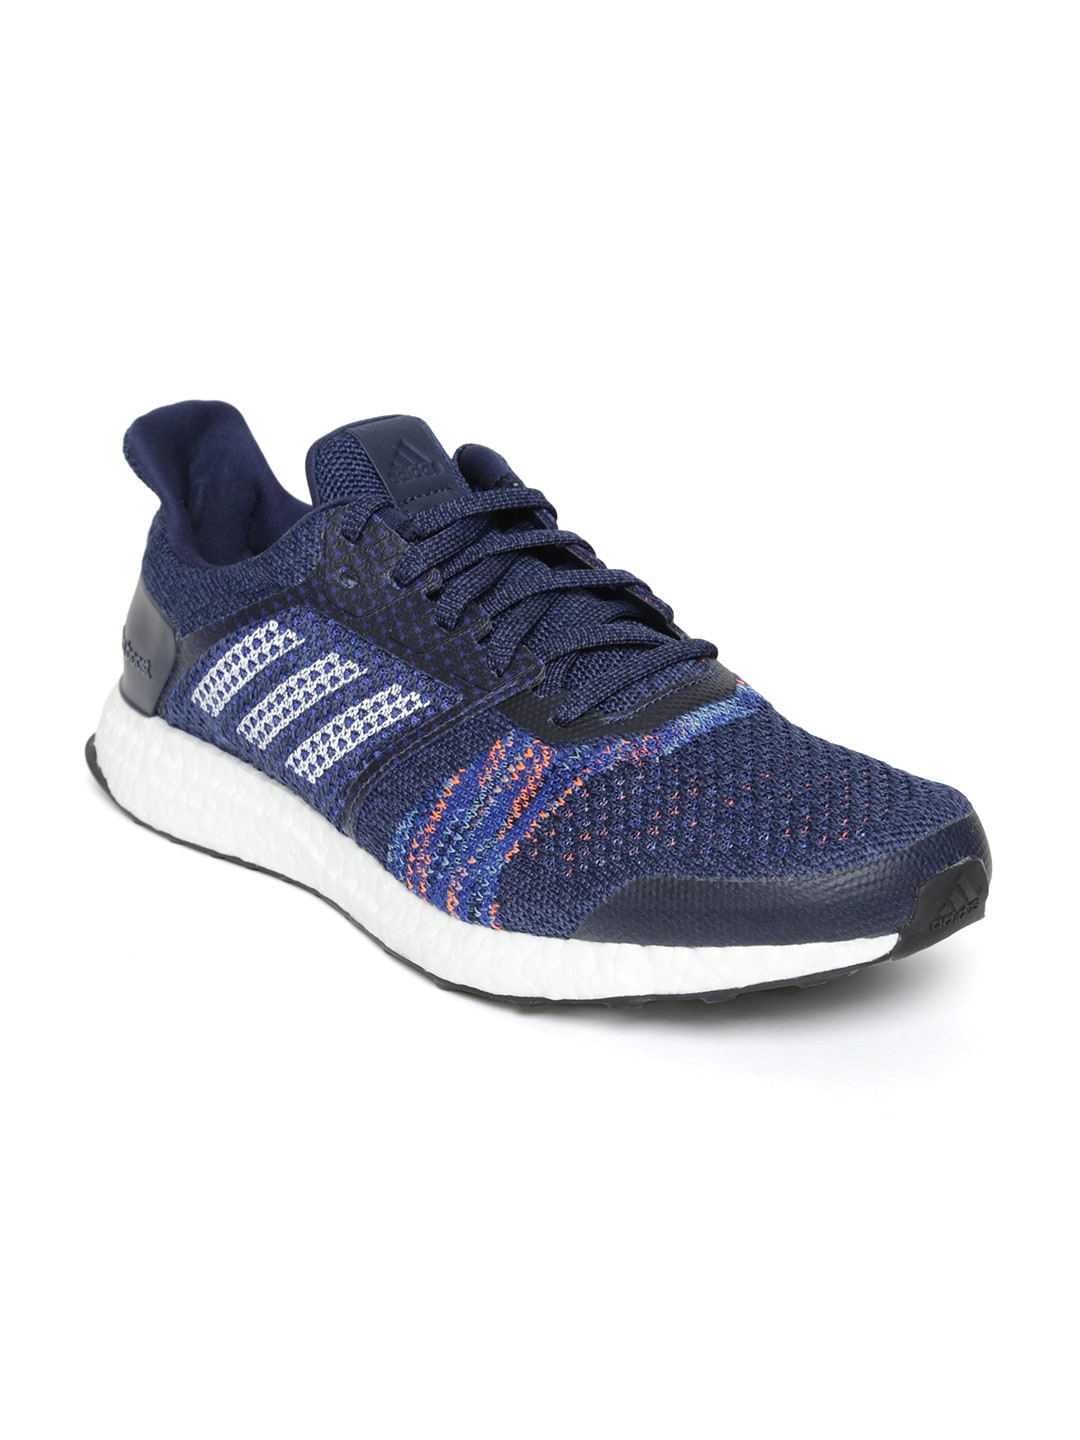 956bca956 Adidas Sports Shoes - Buy Addidas Sports Shoes Online